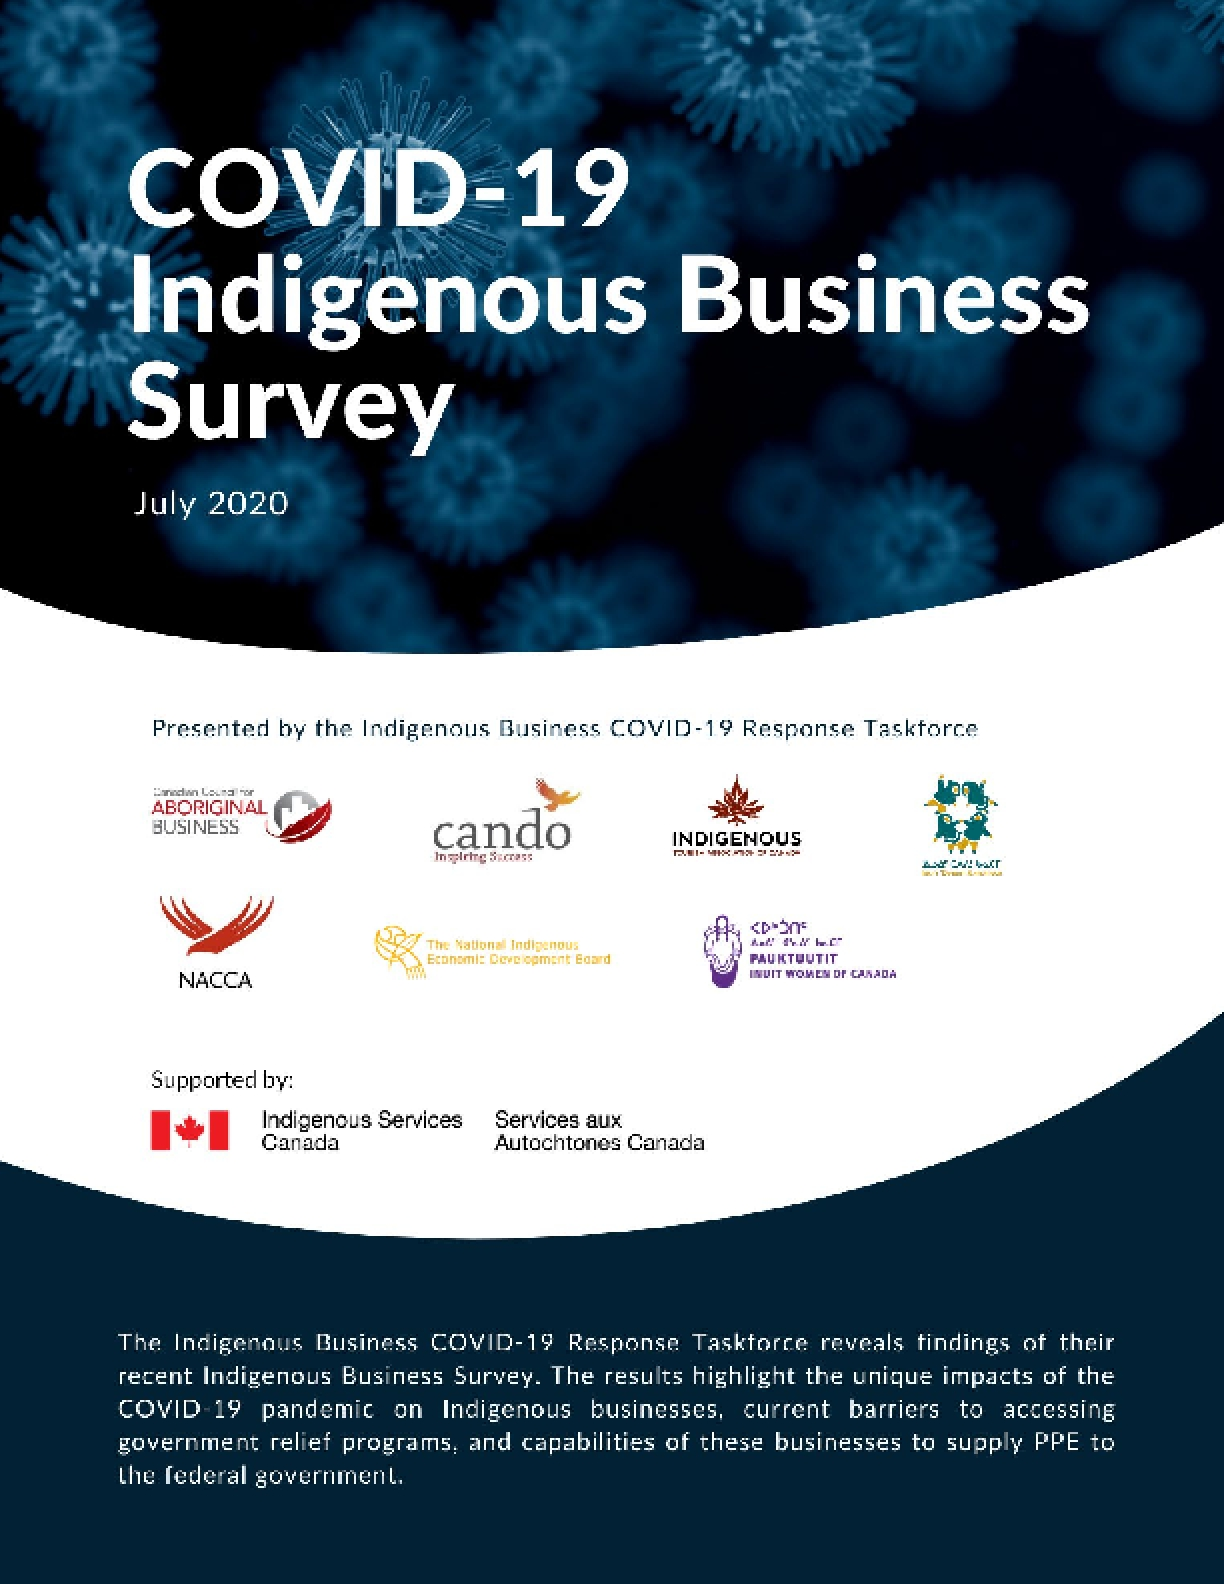 The COVID-19 Indigenous Business Survey